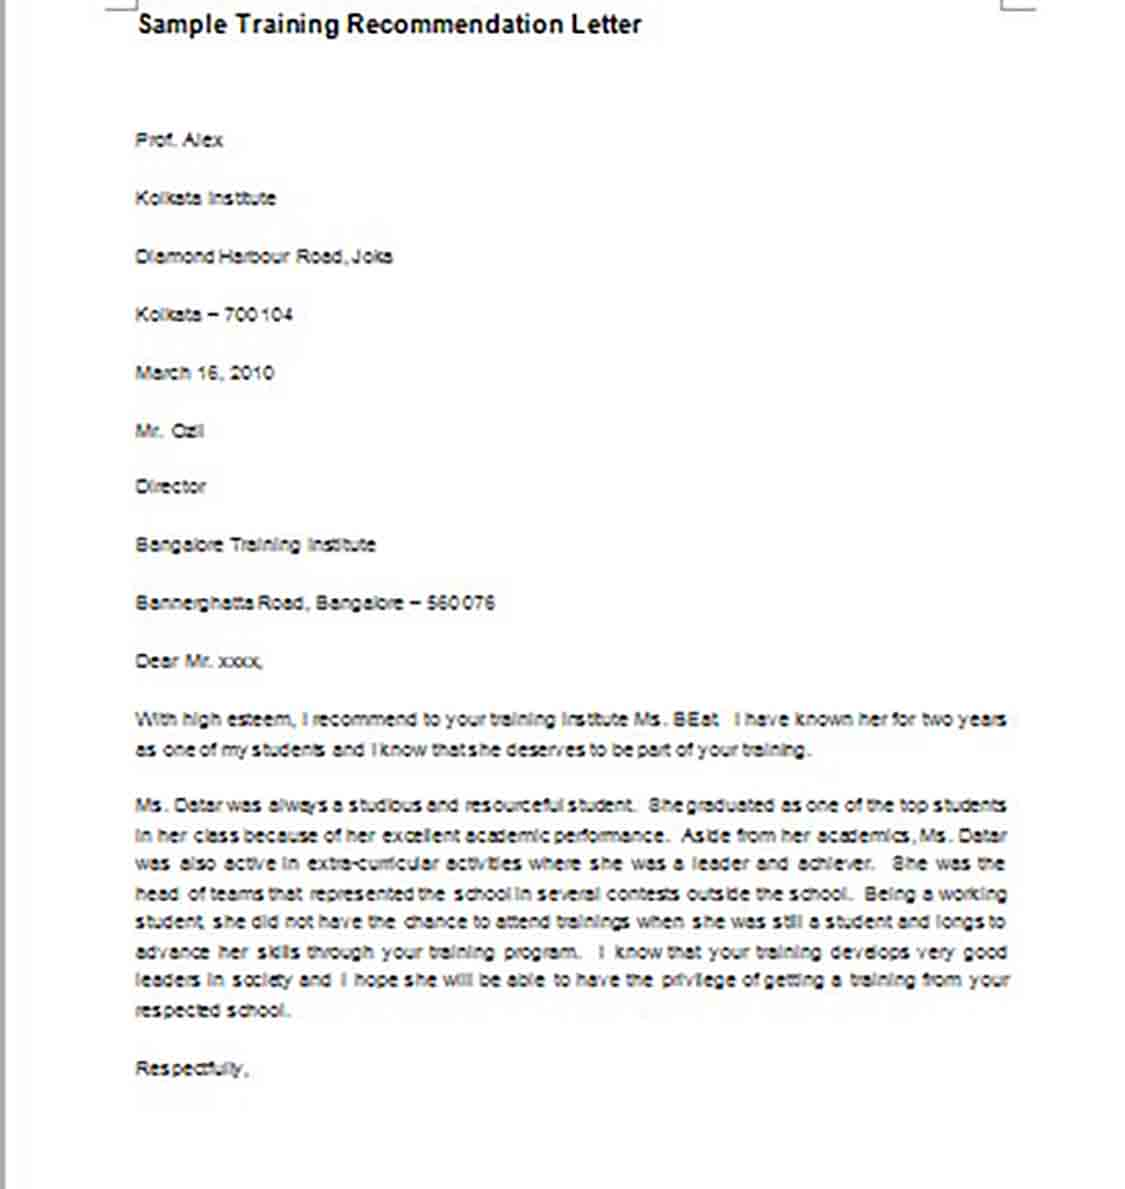 Sample Training Recommendation Letter